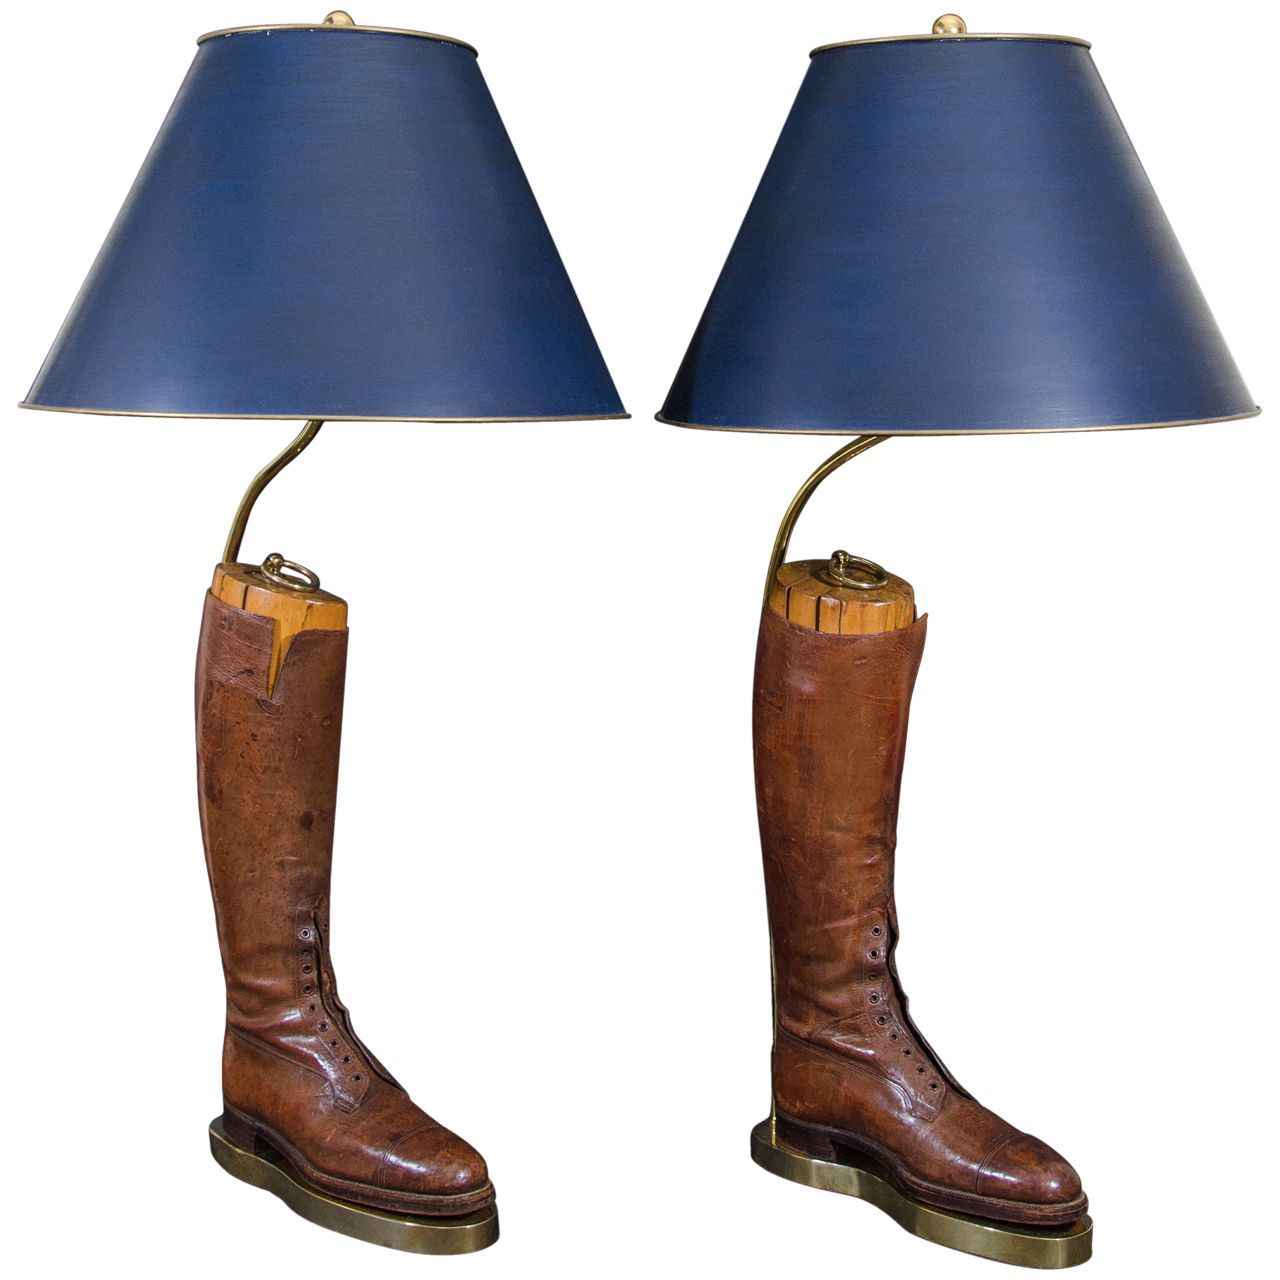 Leather Riding Boot Lamps With Wooden Forms 1stdibs Com Riding Boots Leather Riding Boots Boots